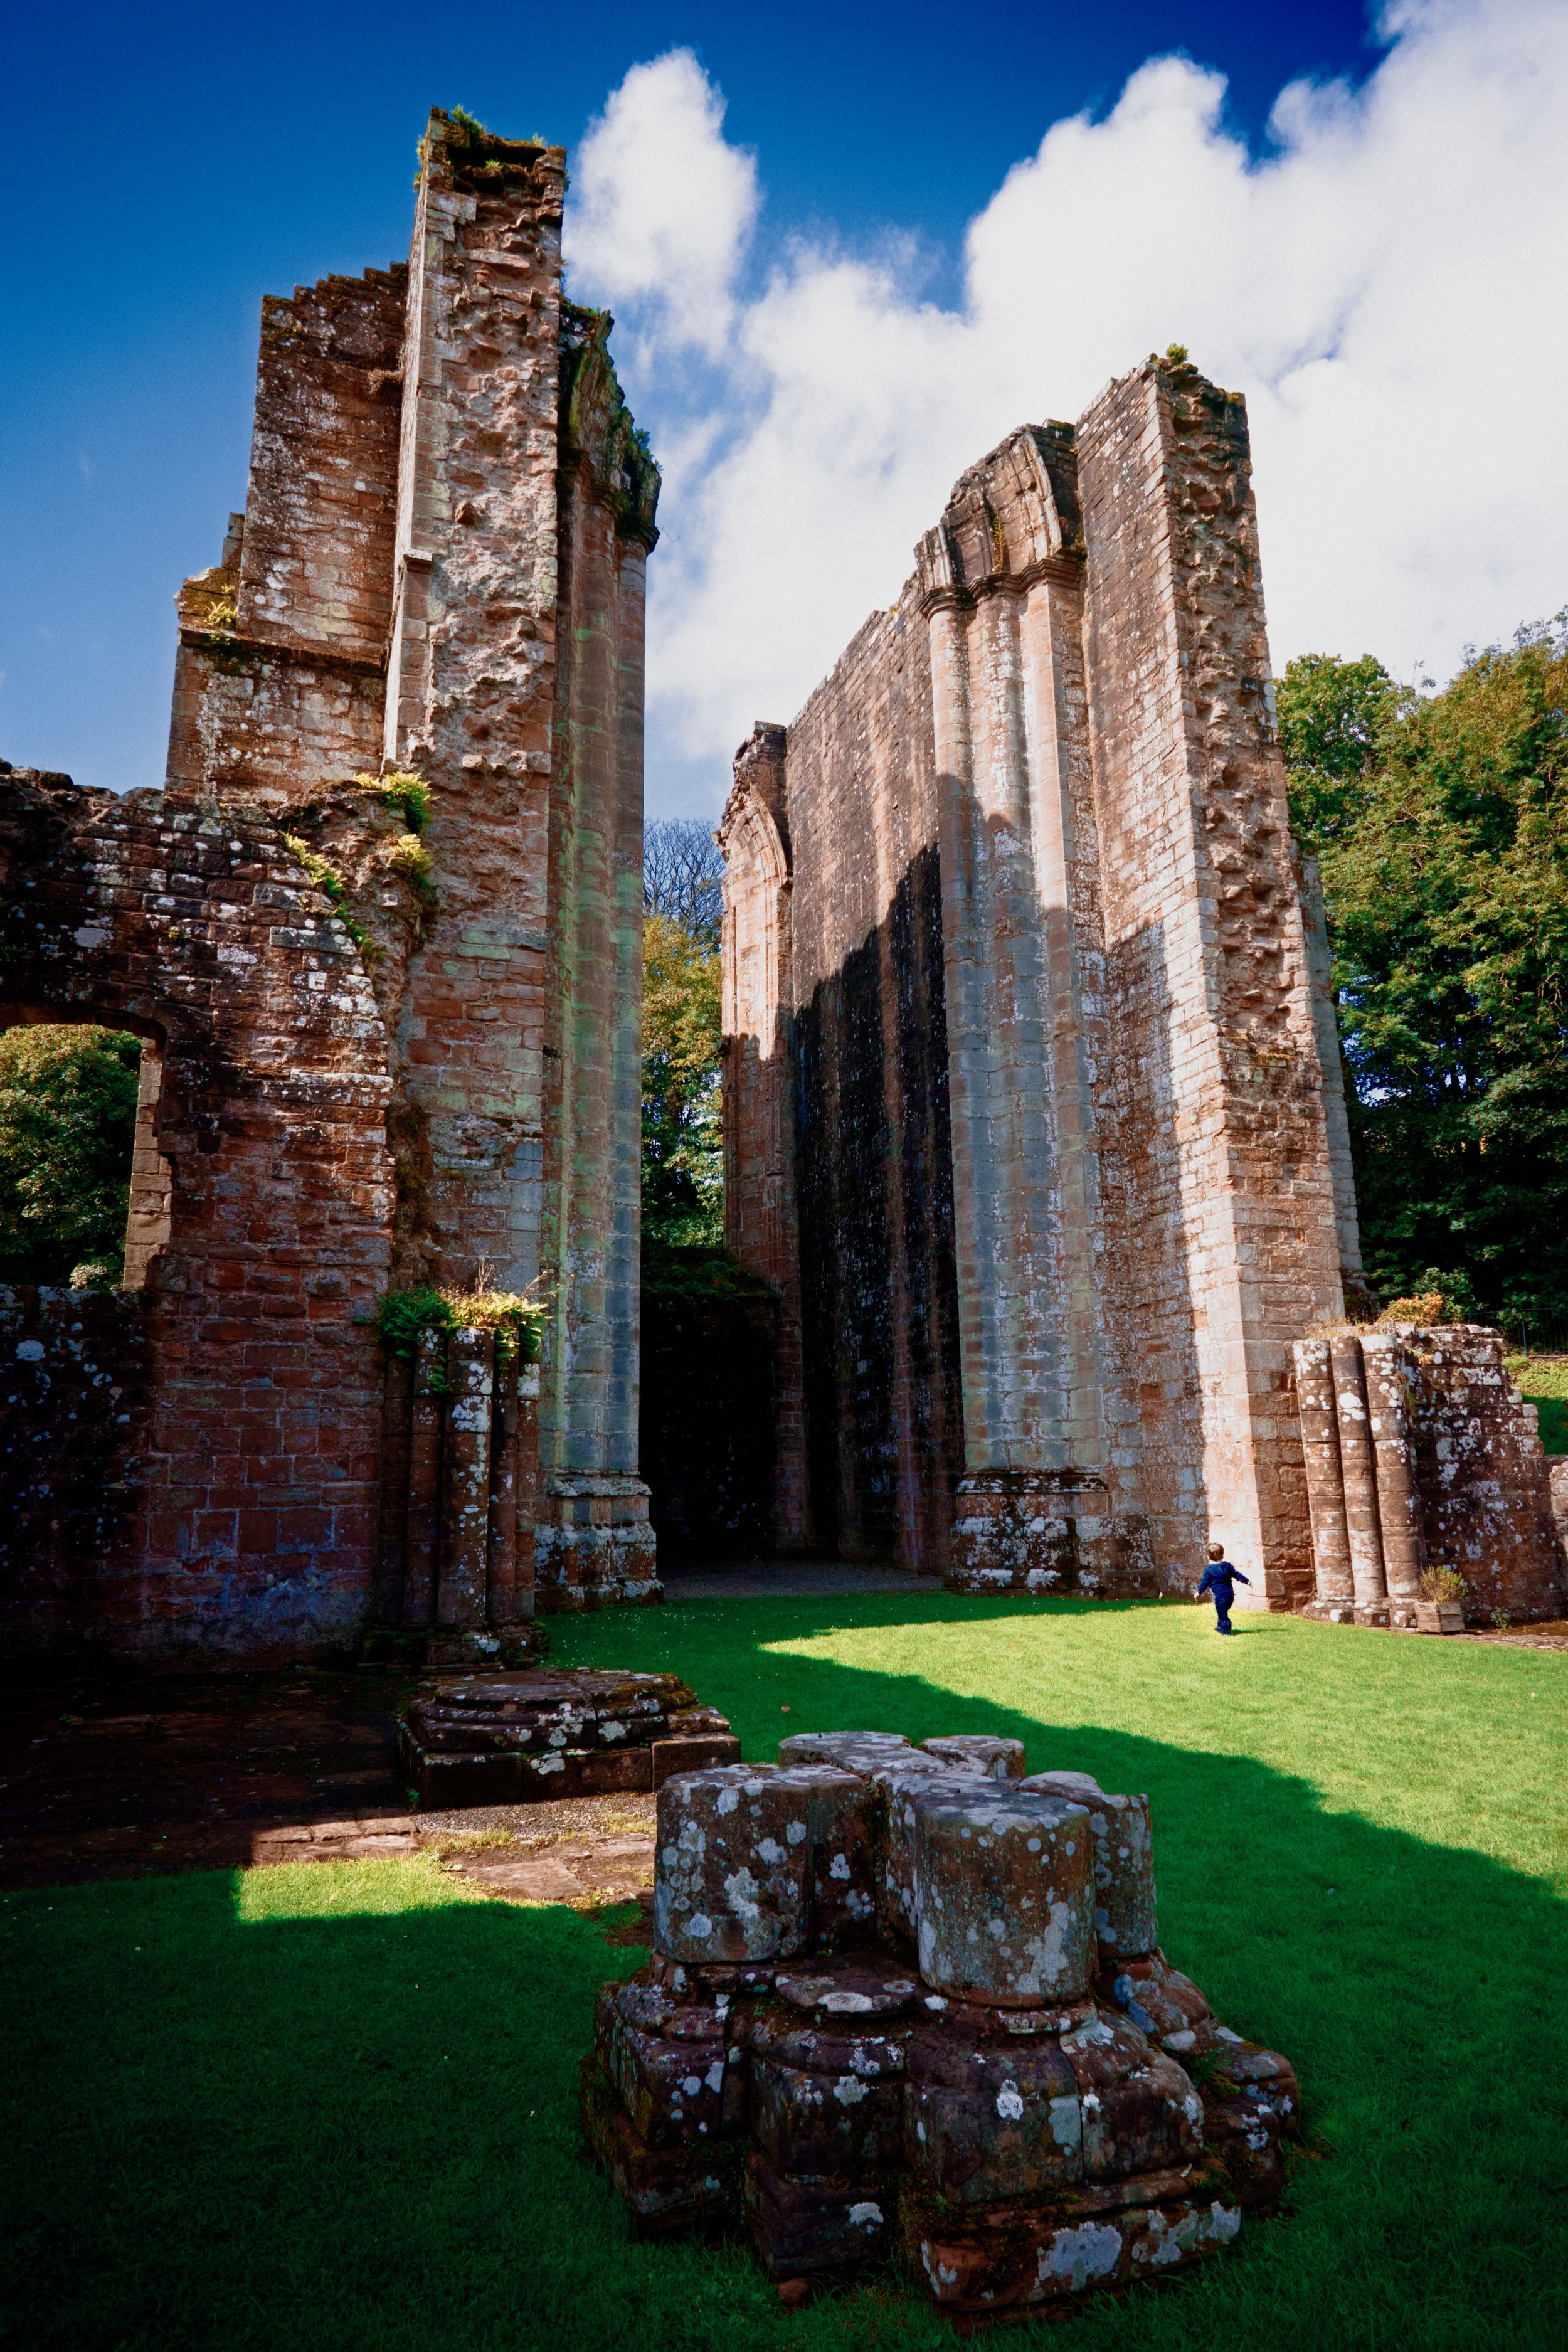 Lisabet and I have visited quite a few abbey ruins in our time, and there's a common feeling we experience when visiting them: a sense of peace. Read the rest of this post here  https://www.iancylkowski.com/blog/2019/8/17/the-peace-of-time